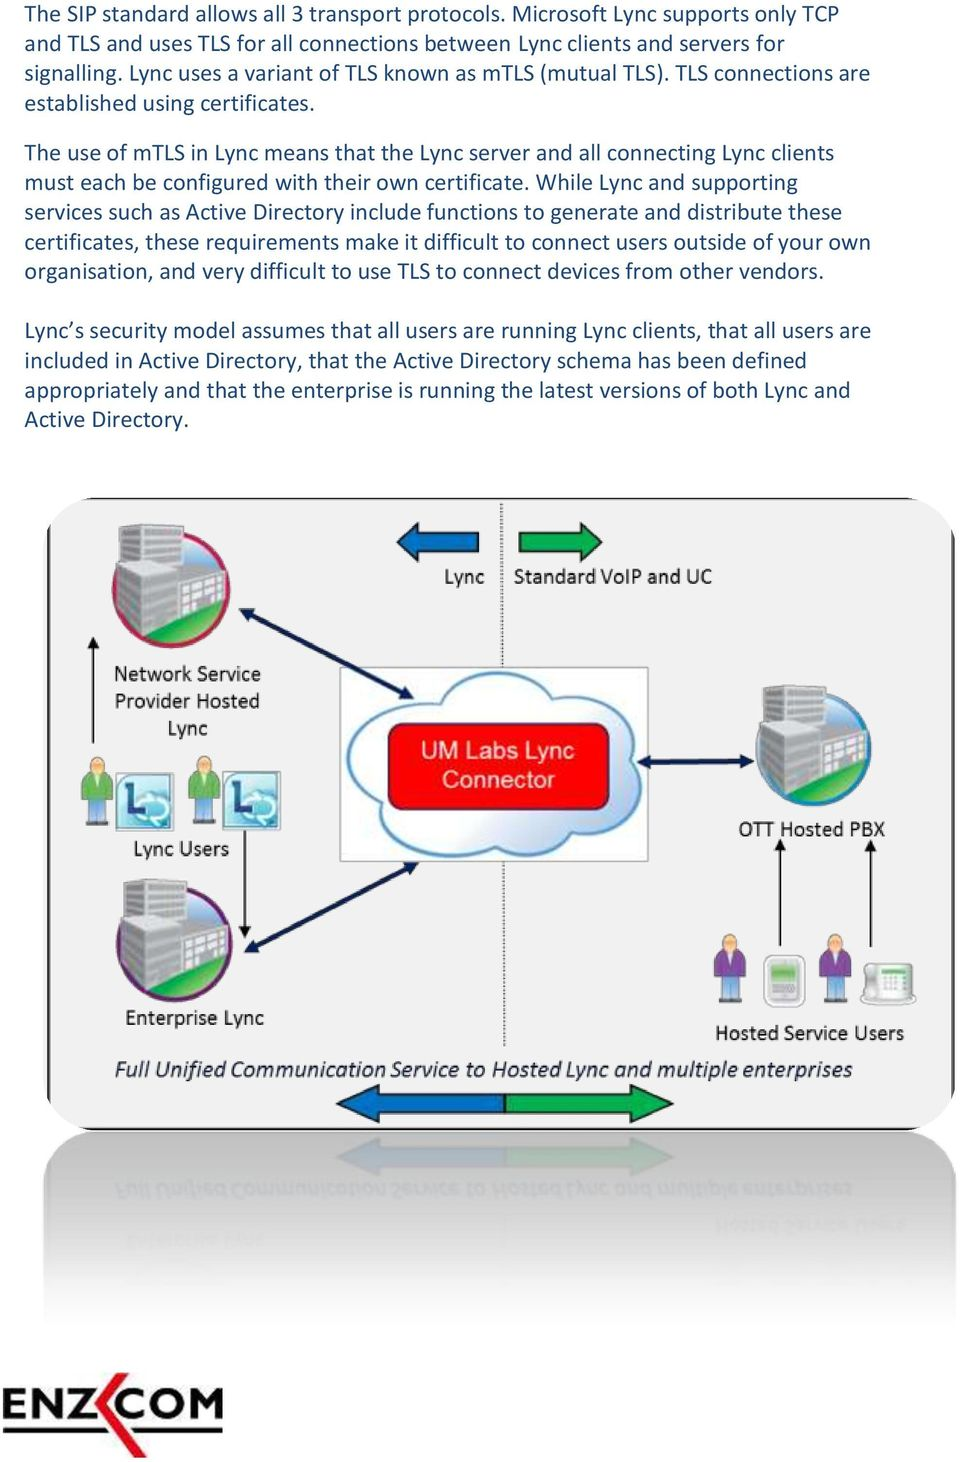 The use of mtls in Lync means that the Lync server and all connecting Lync clients must each be configured with their own certificate.